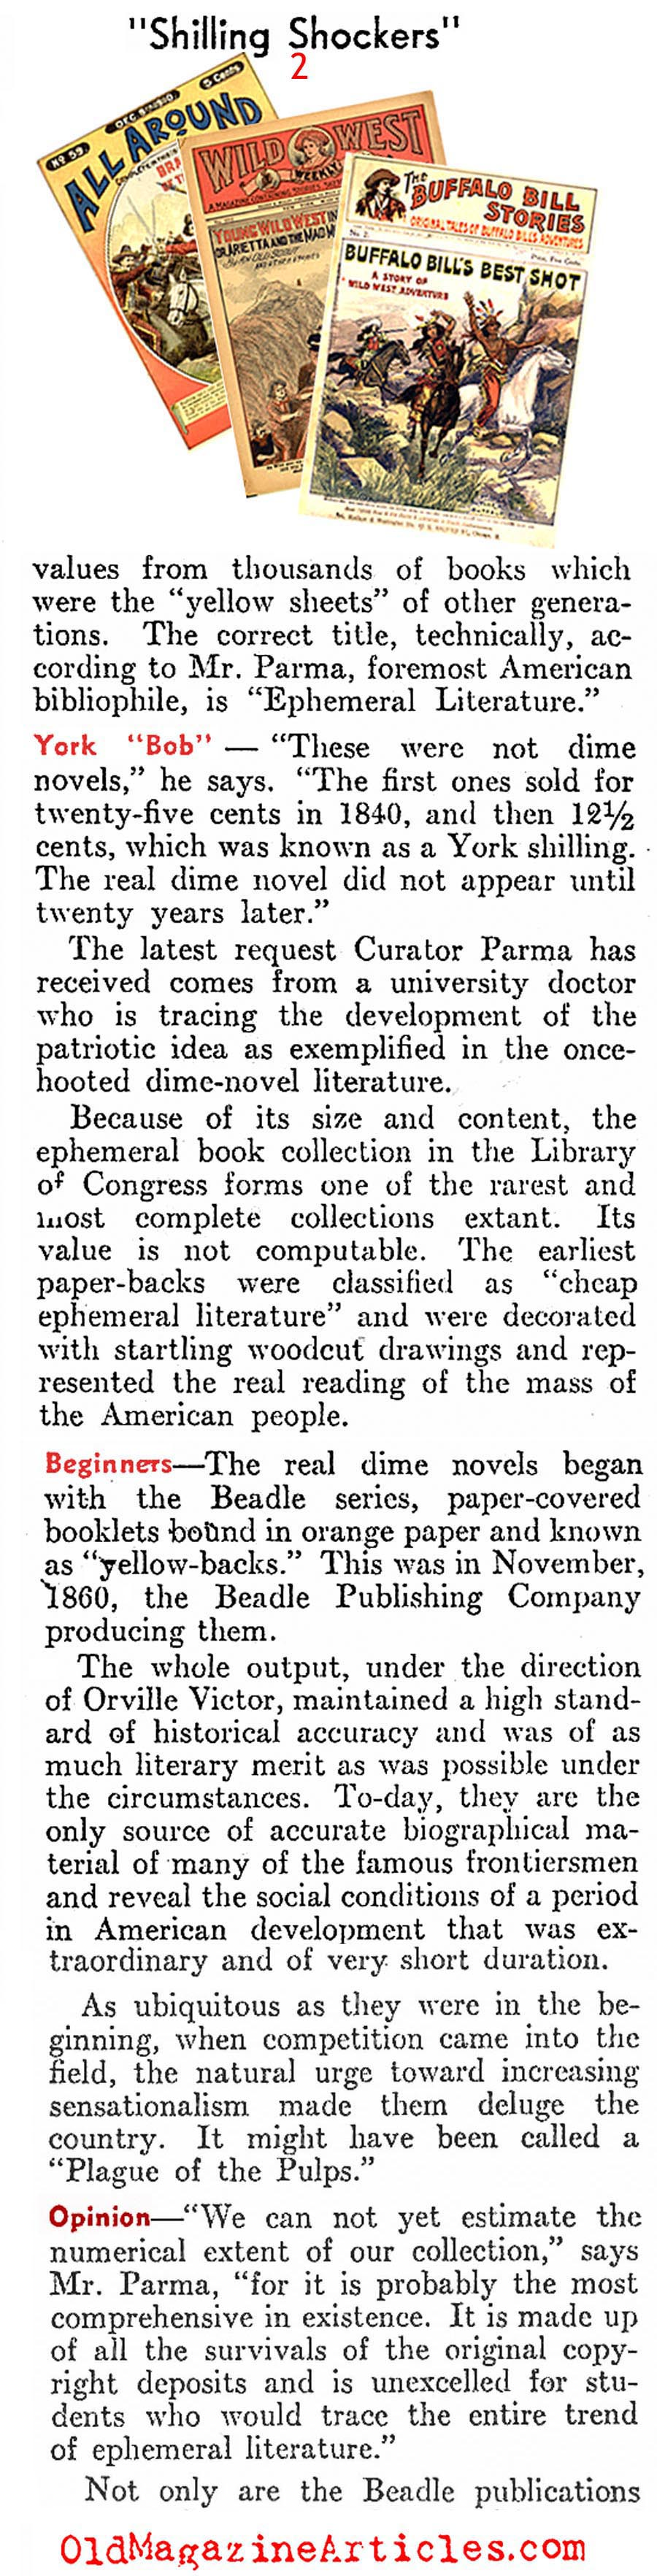 Library of Congress Salutes the Dime Novel (Literary Digest, 1937)